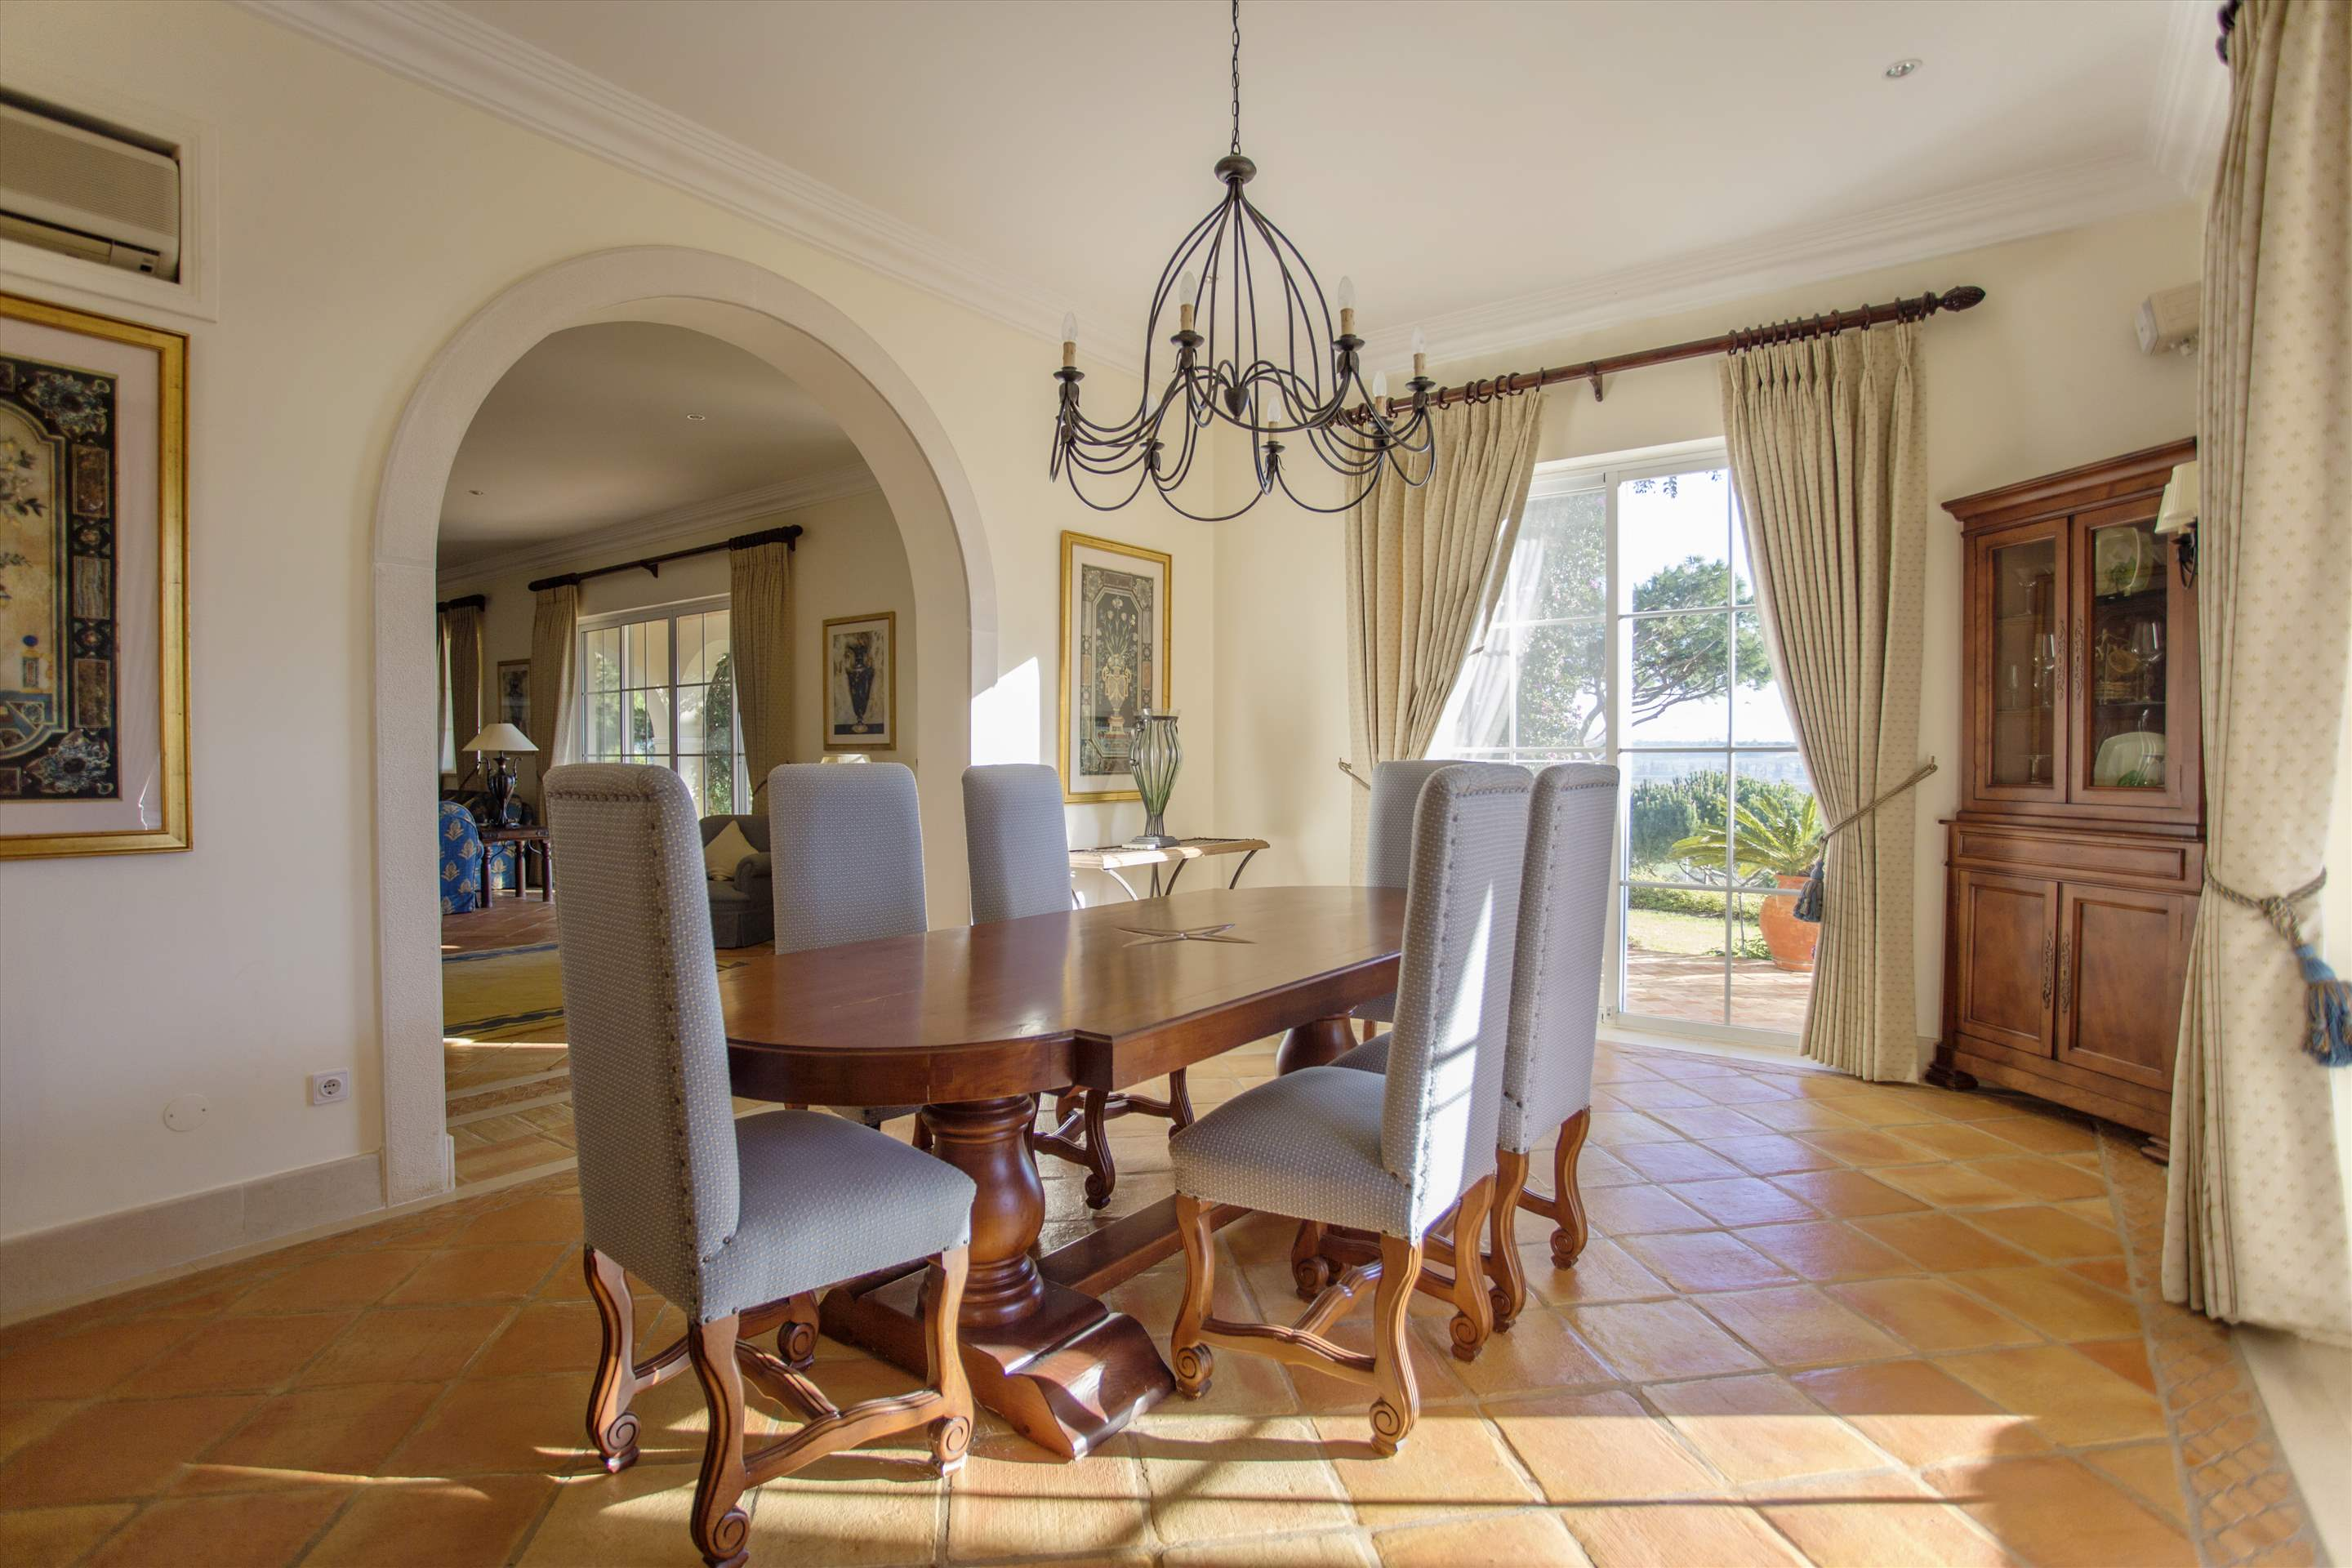 Villa Palmeiras Altas, 5 bedroom villa in Quinta do Lago, Algarve Photo #14